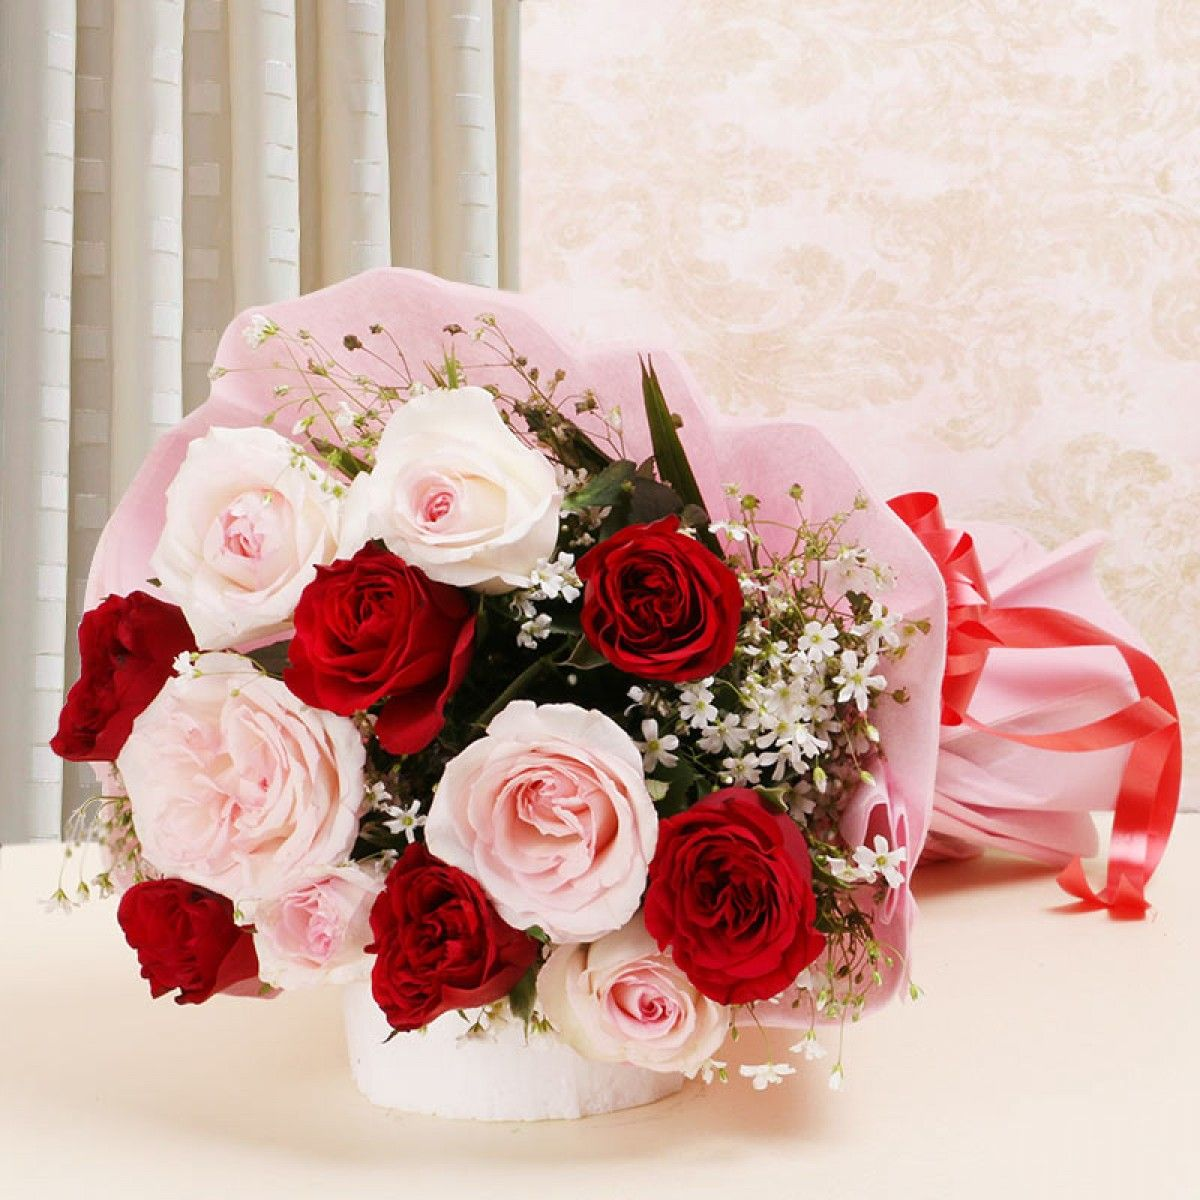 online flowers delivery in Delhi Flower bouquet delivery